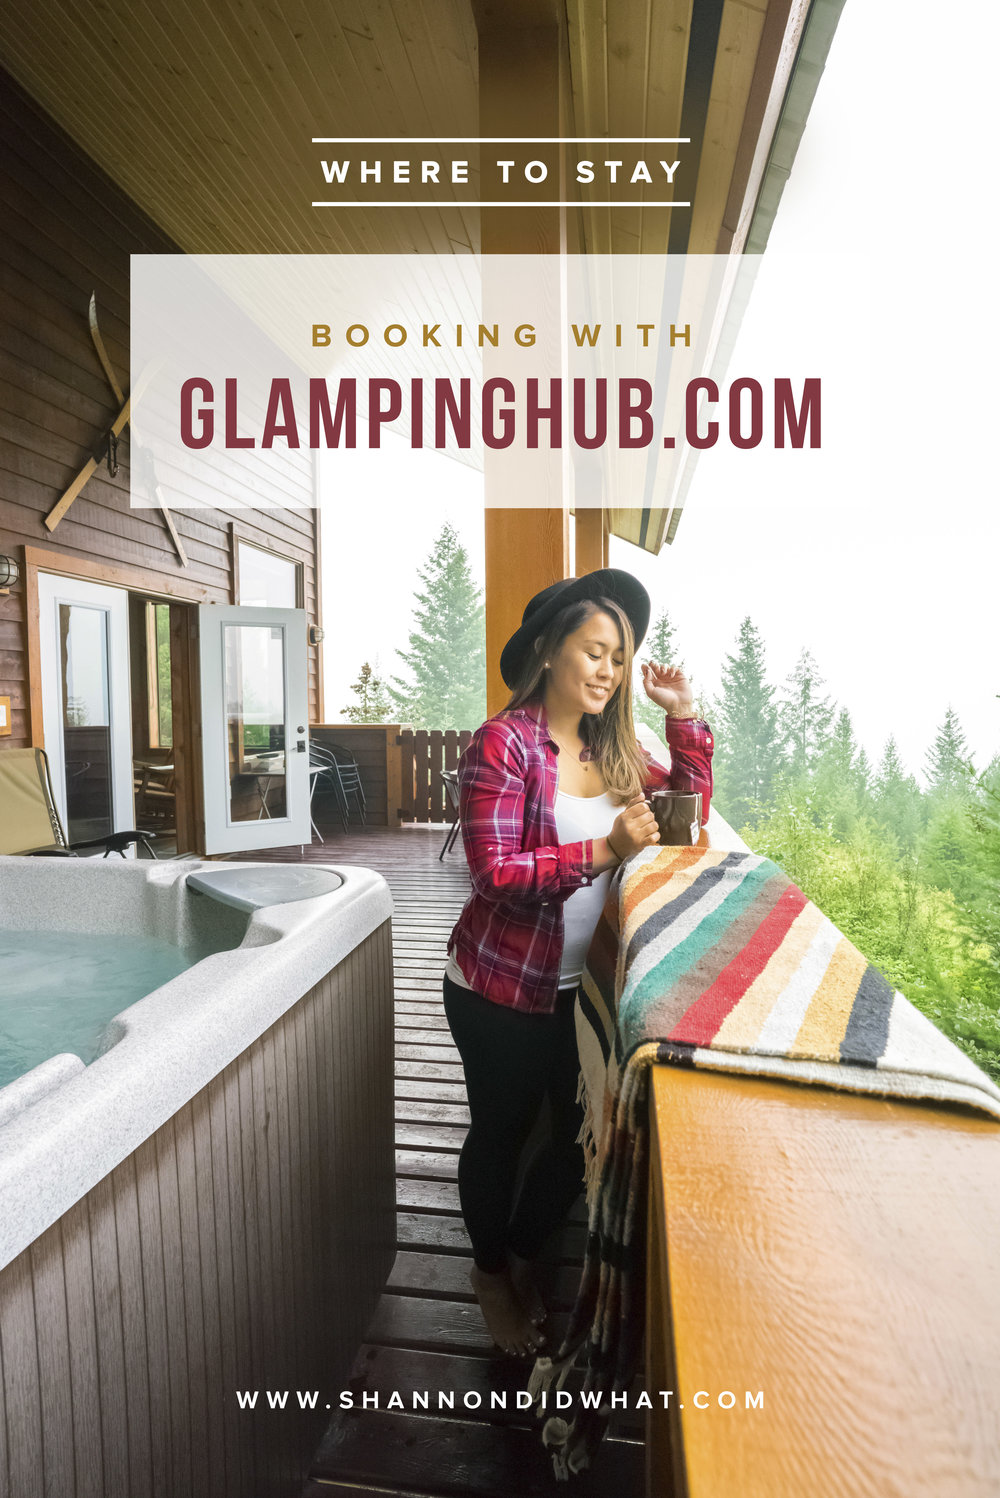 Where to Stay: Booking with GlampingHub.com